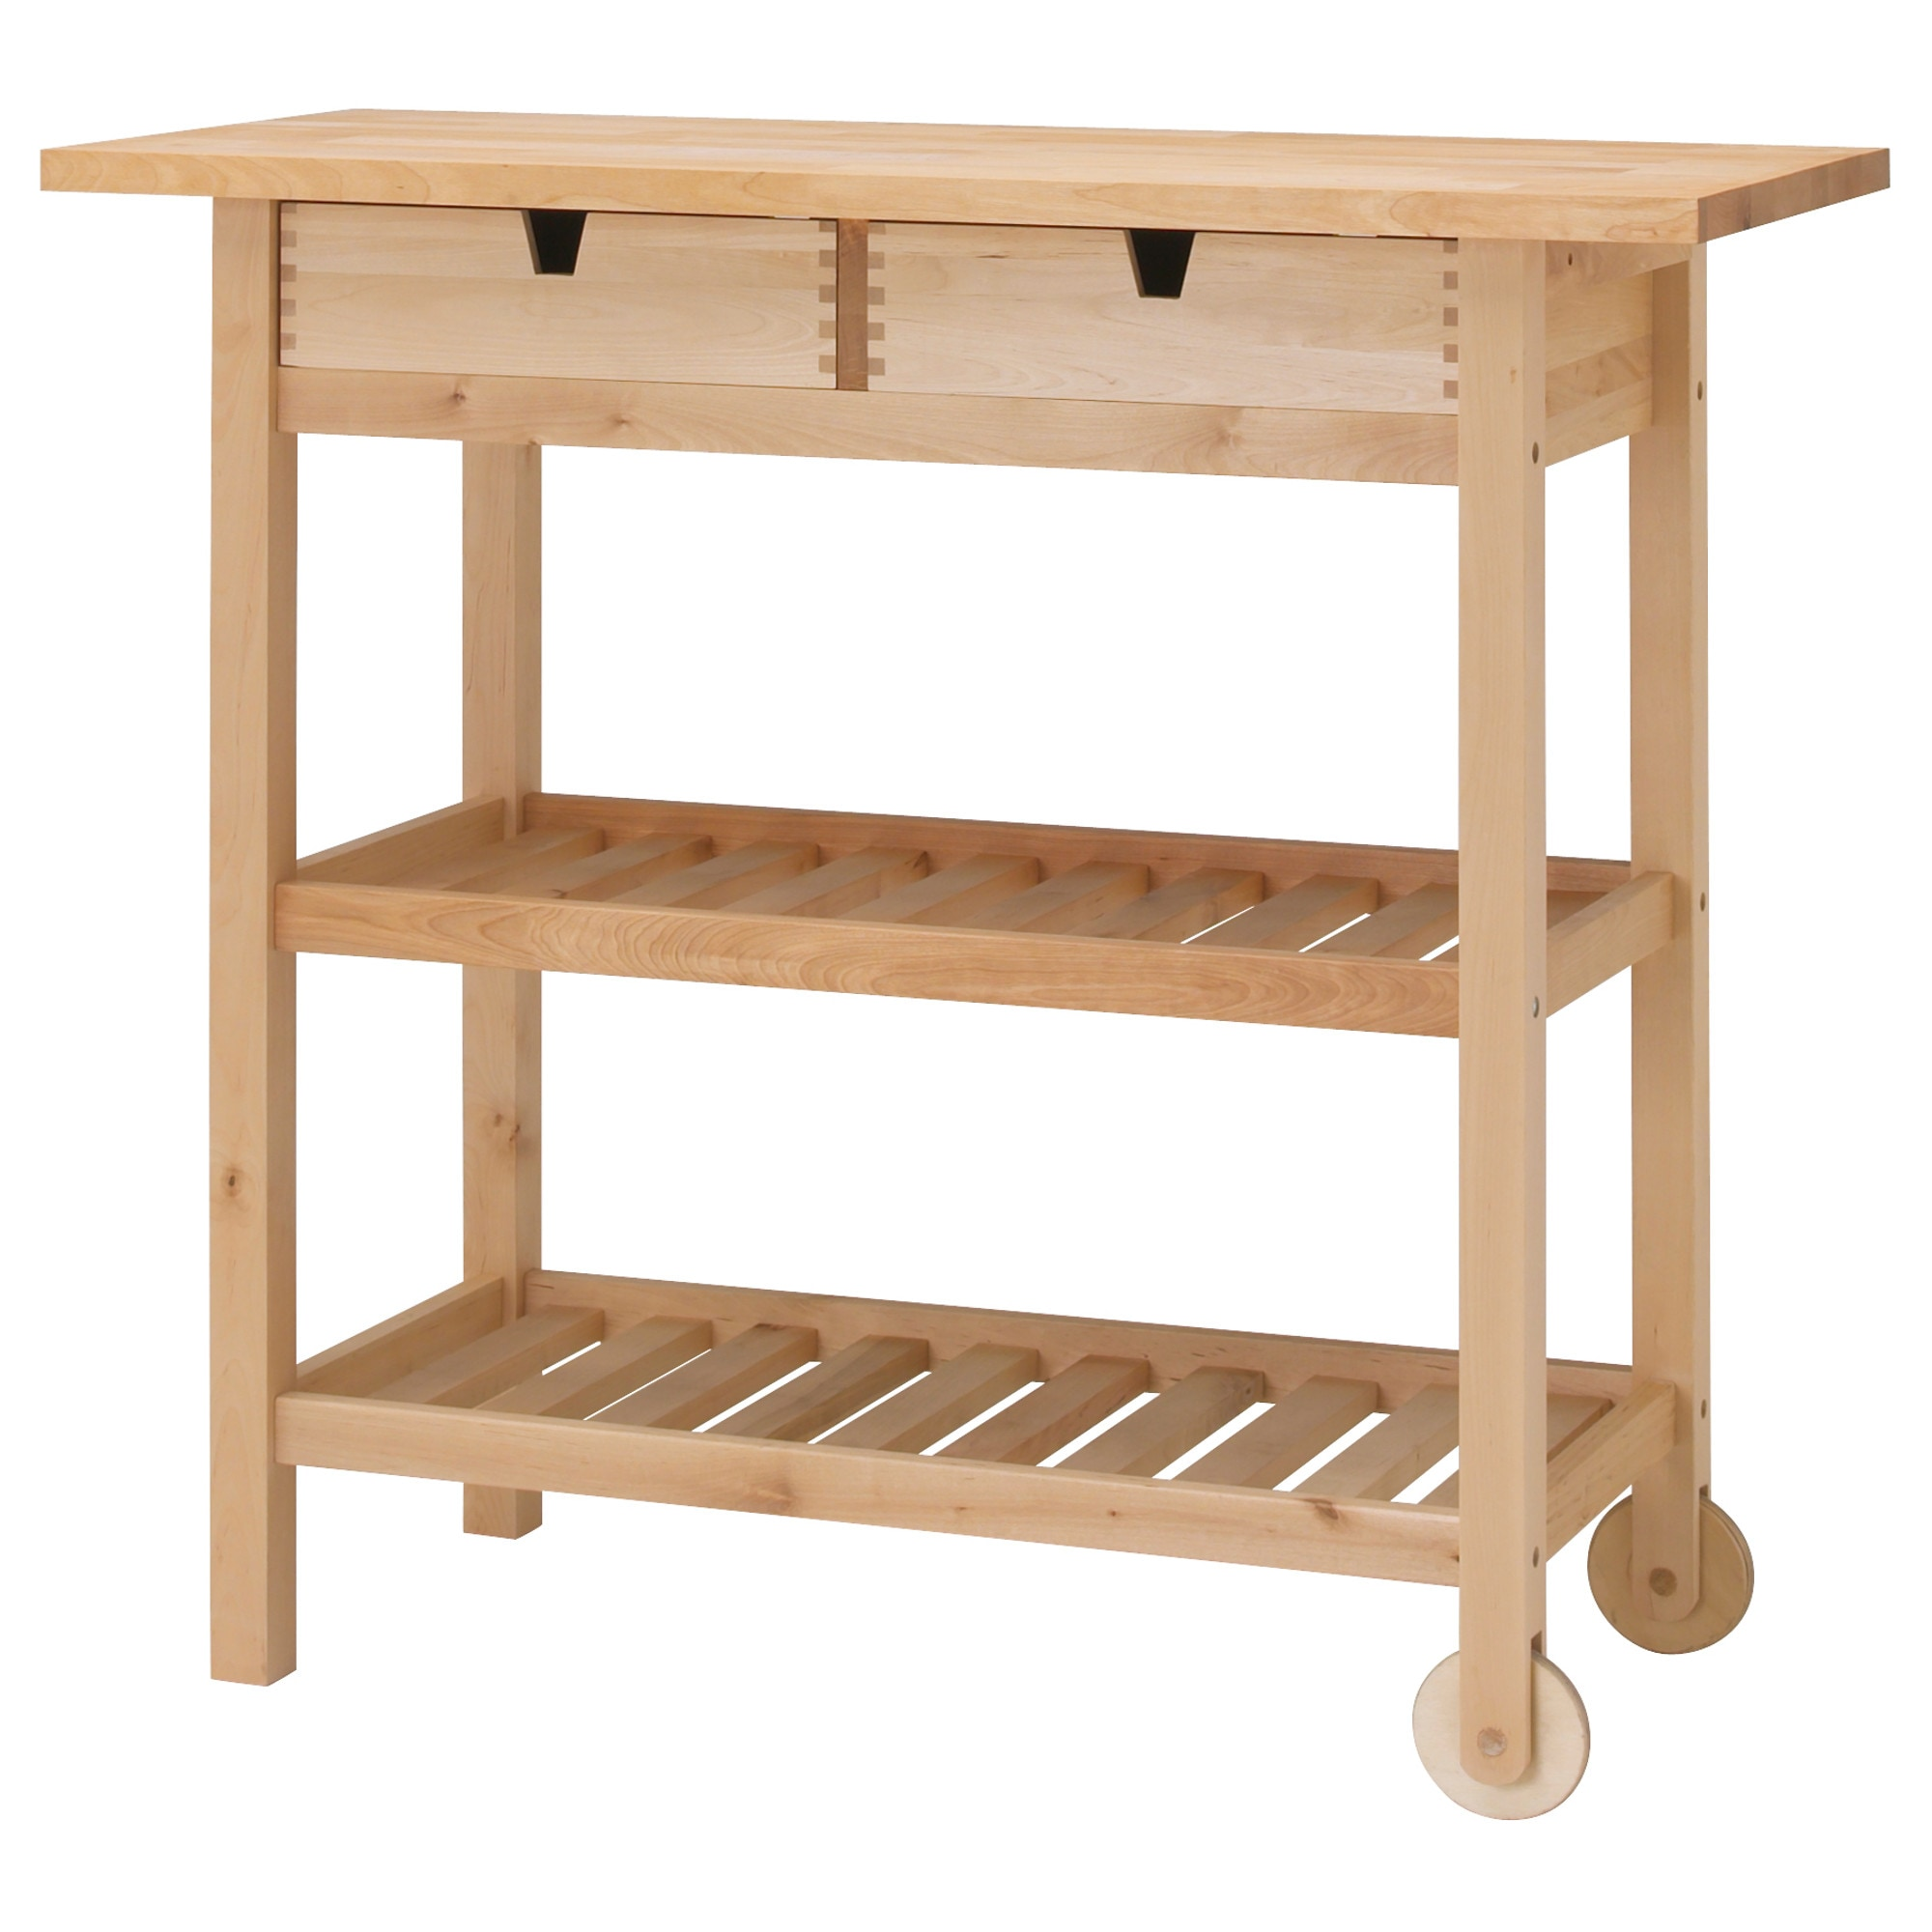 pcr in carts image drawer reviews customer best winsome single wood cabinet helpful natural rated storage kitchen islands product cart deawxl